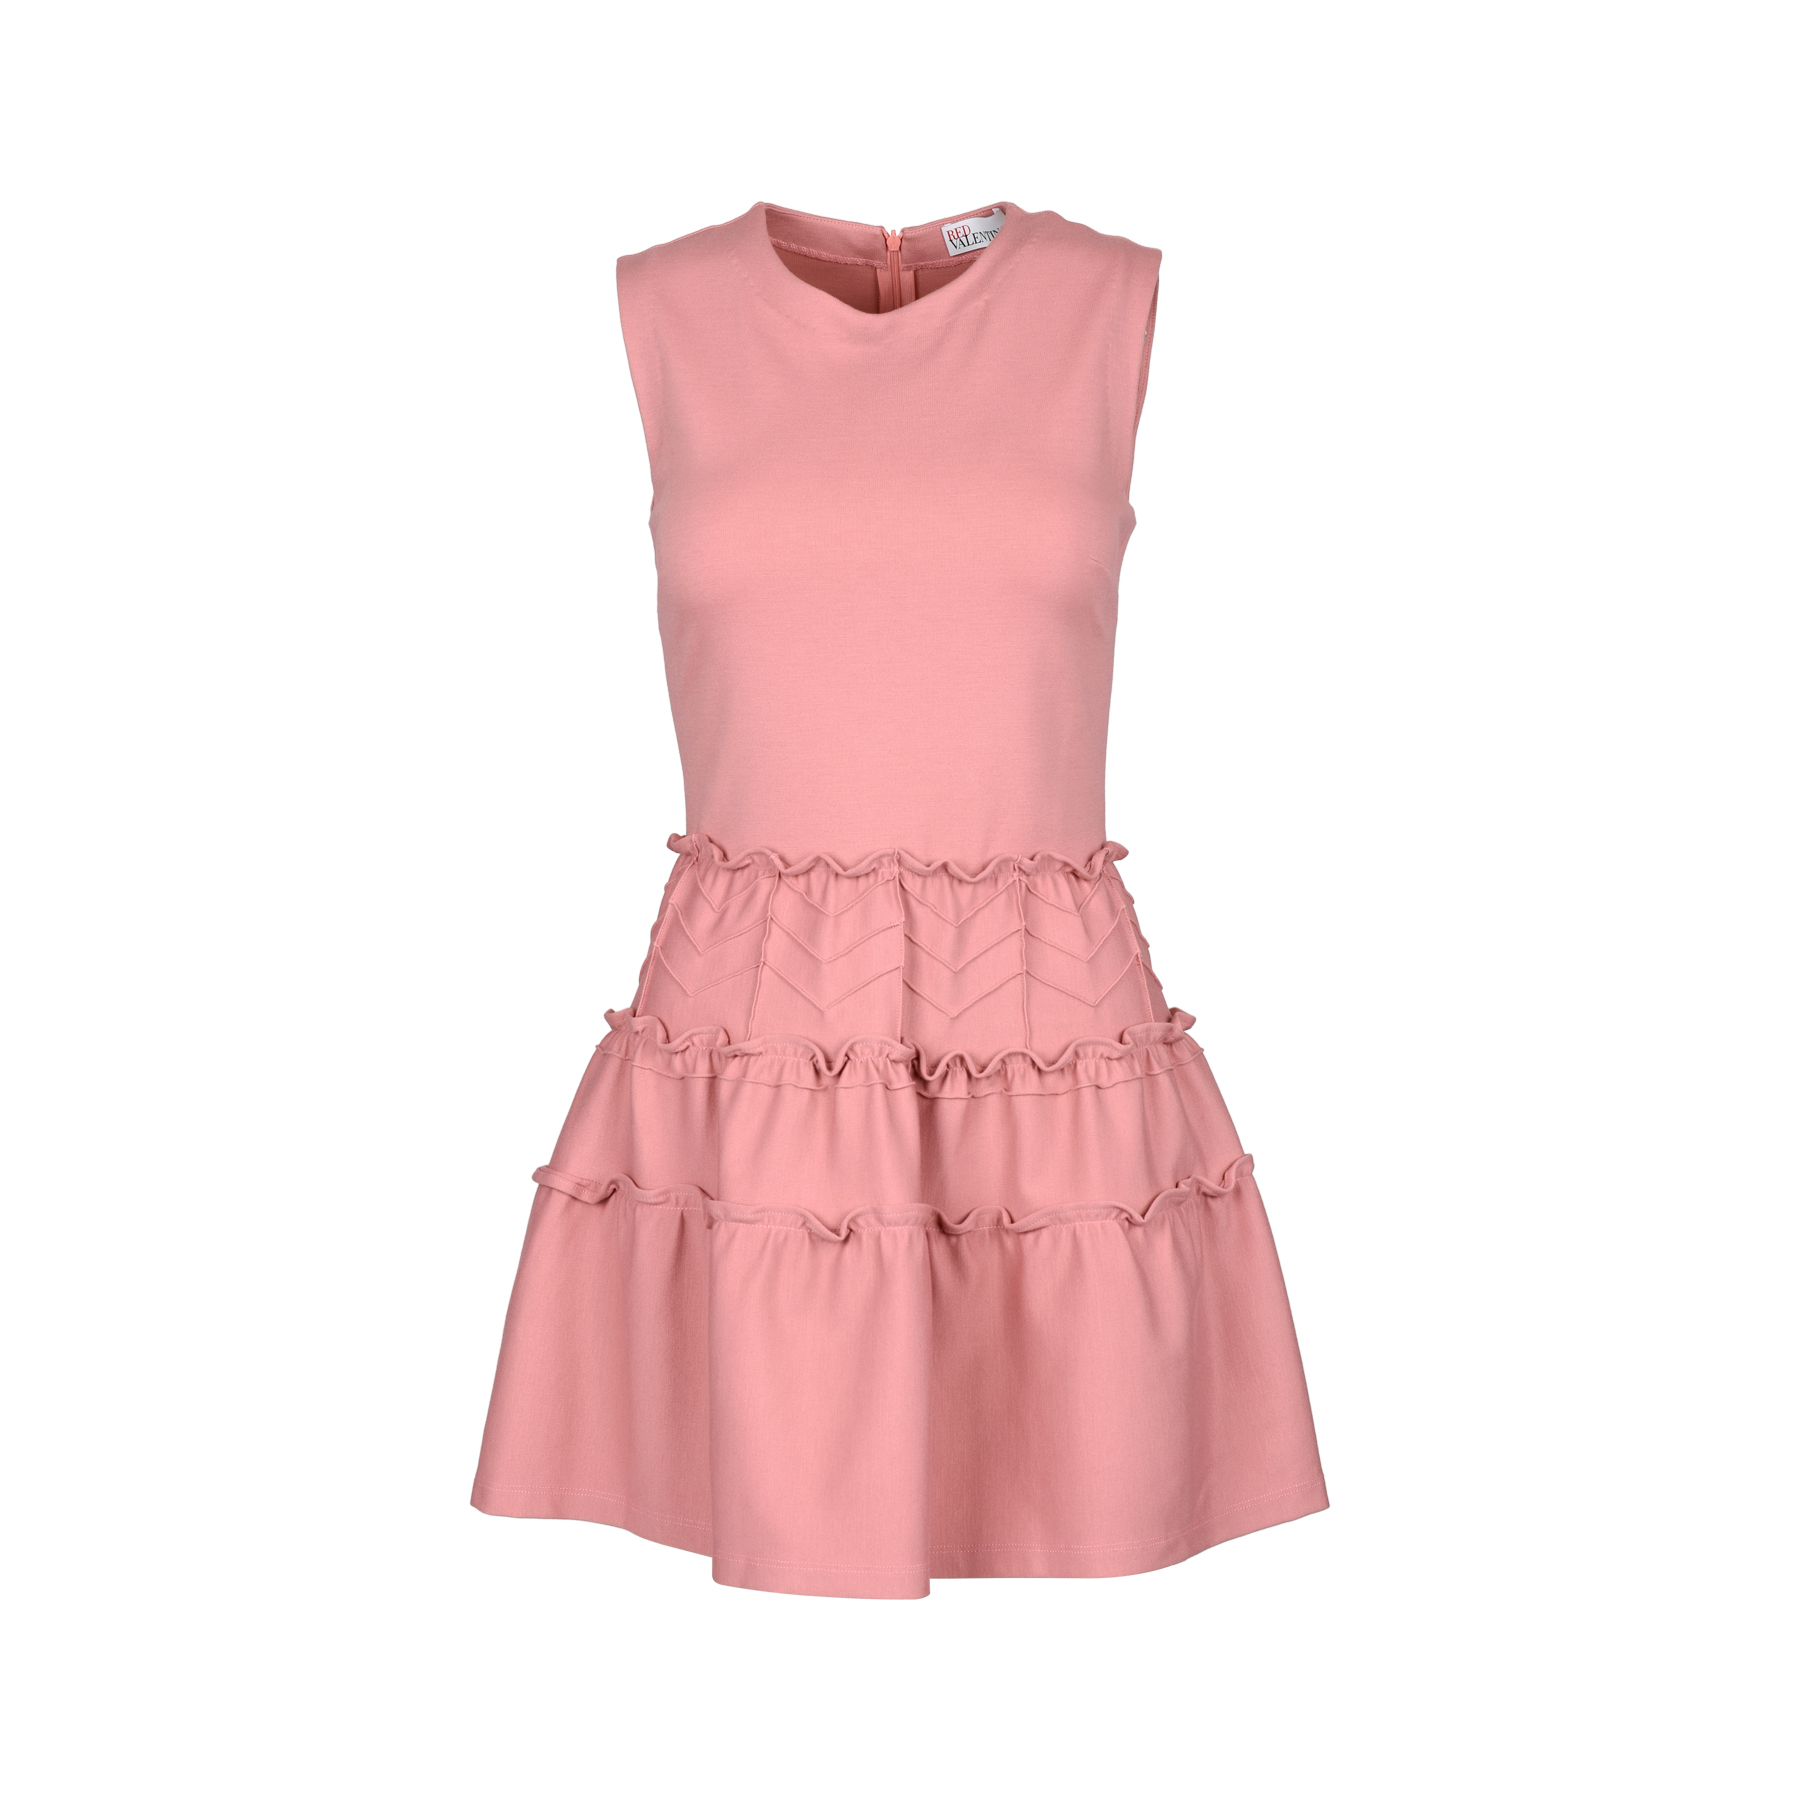 bdc6ca65f97 Authentic Second Hand RED Valentino Ruffled Tier Dress (PSS-387-00045)